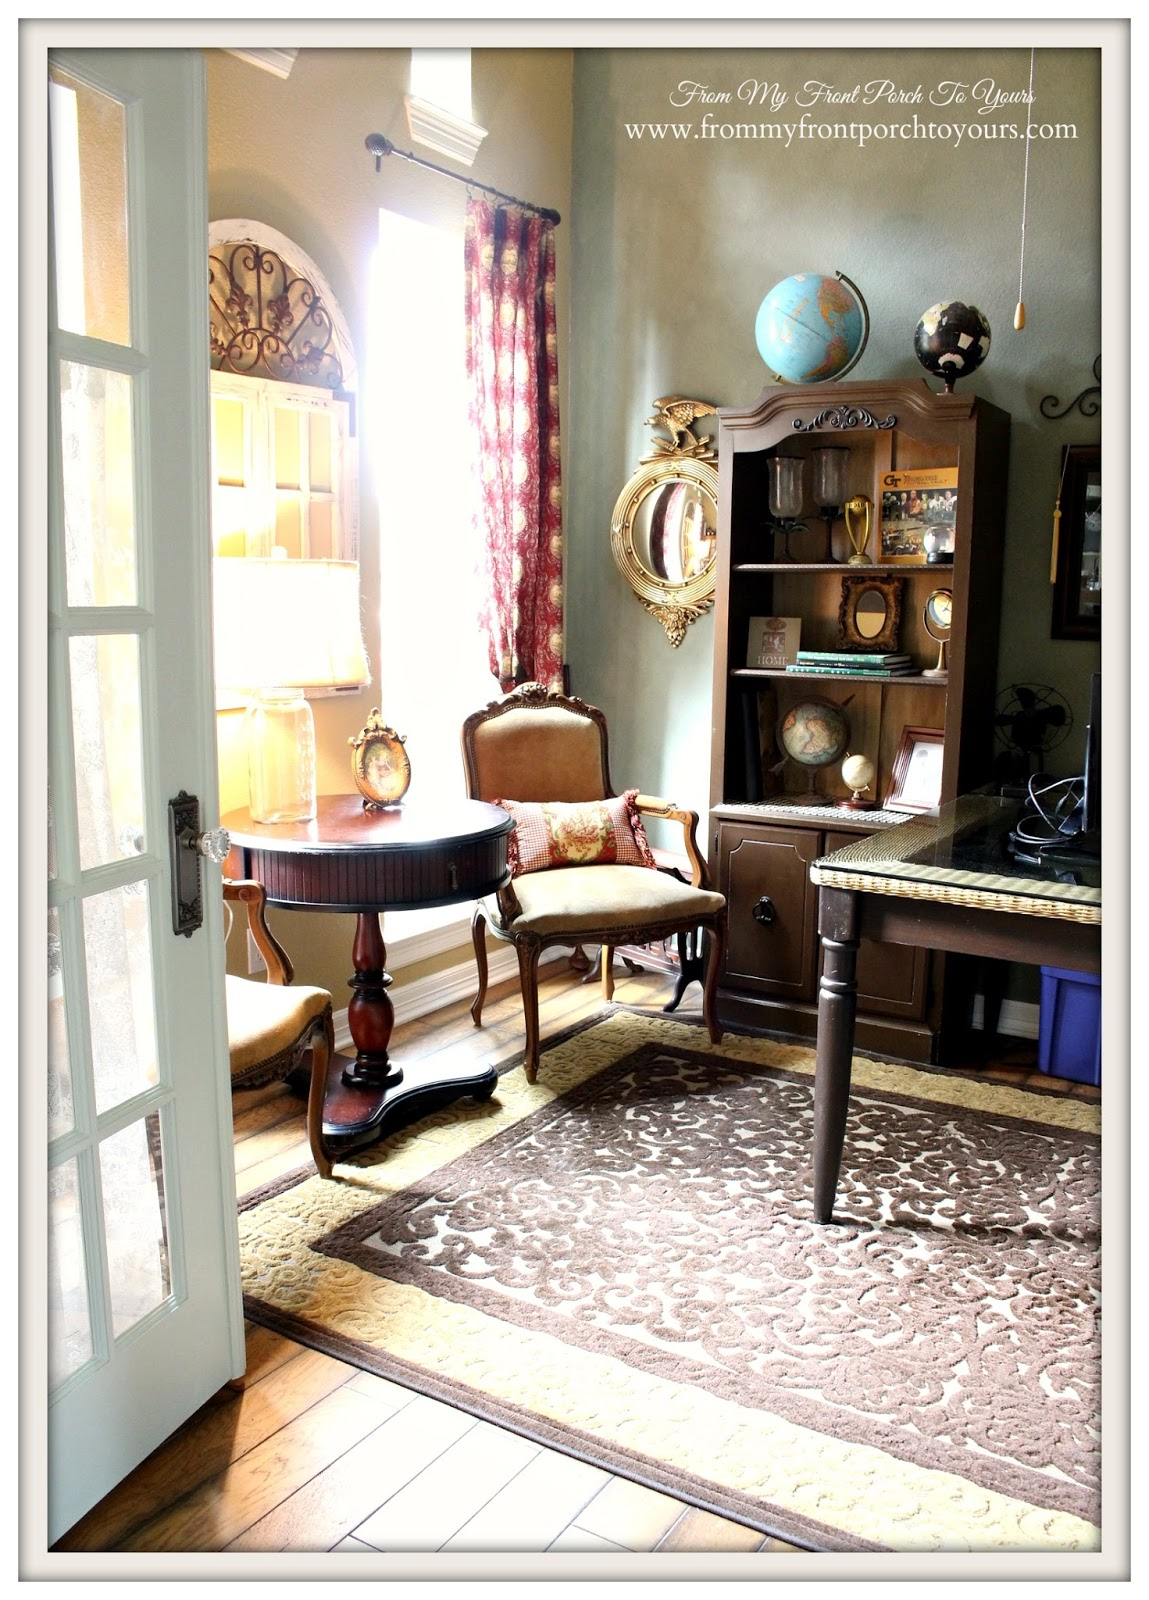 country home office. federal mirrorfrench provincial chairsfrench country home office from my front porch f